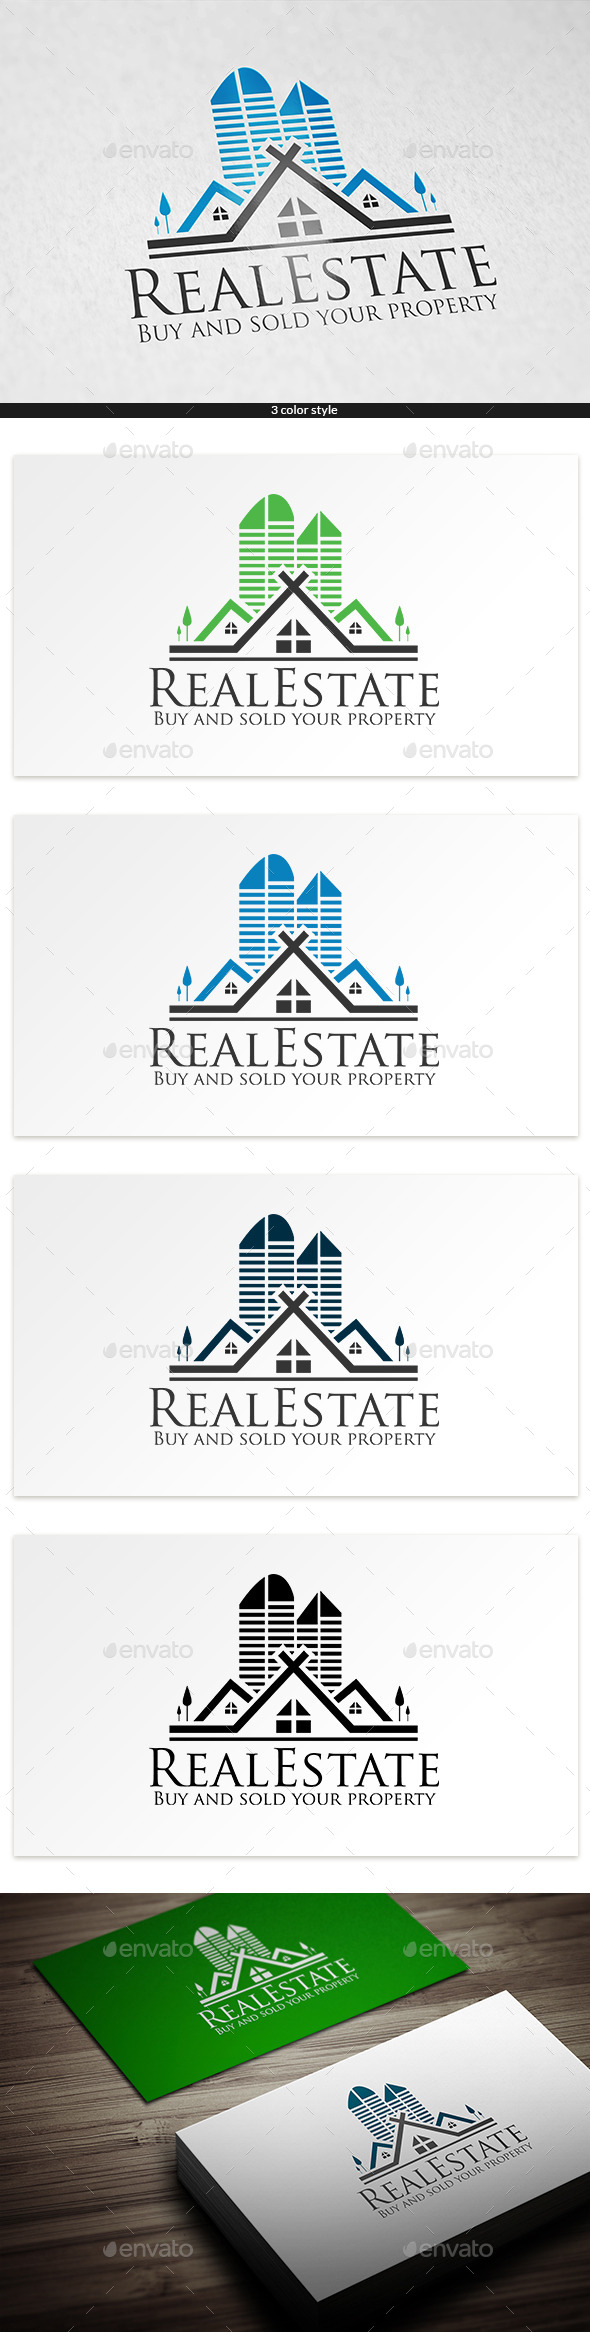 Pyramid Real Estate - Buildings Logo Templates